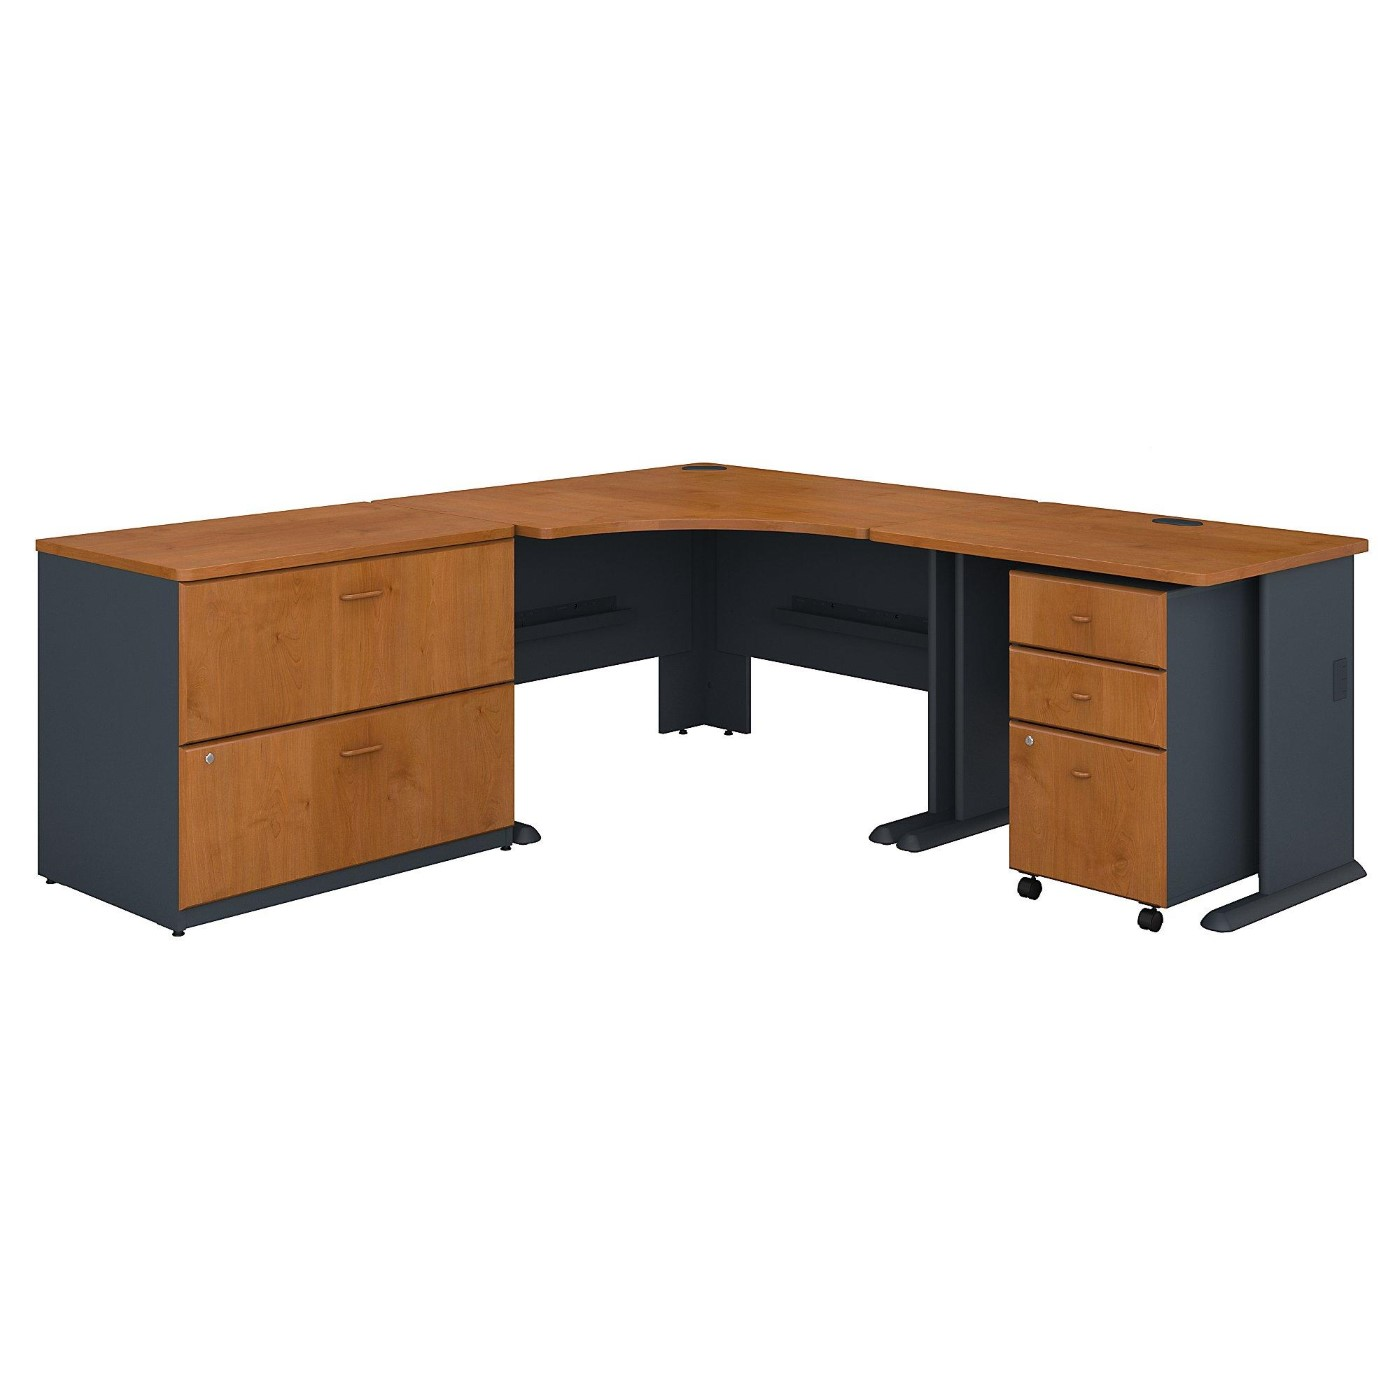 BUSH BUSINESS FURNITURE SERIES A 48W CORNER DESK WITH 36W RETURN AND FILE CABINETS. FREE SHIPPING.